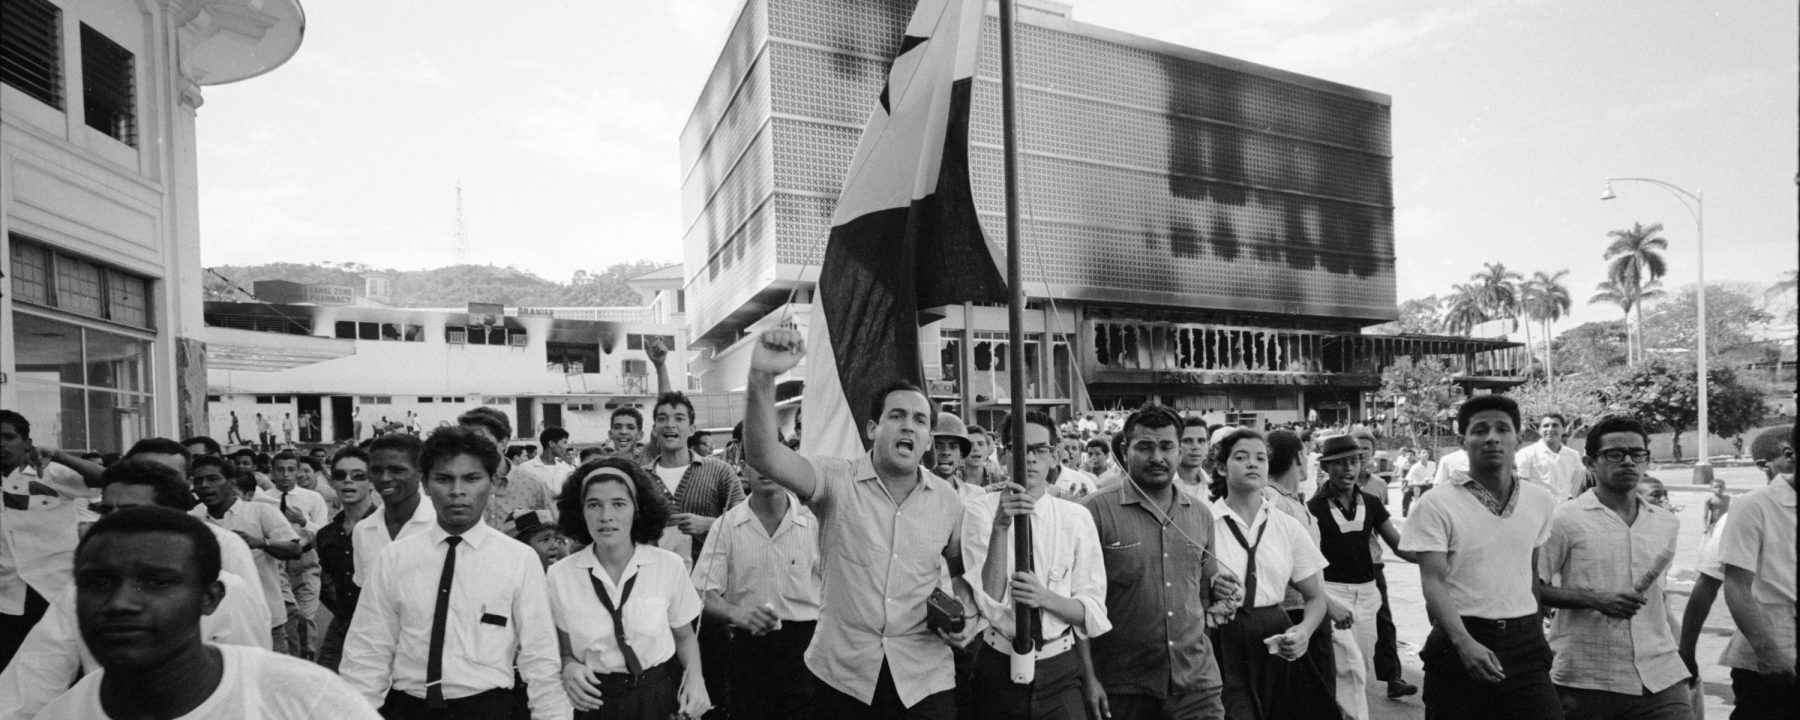 Panamanians march in protest near the Presidential Palace during riots over the sovereignity of Panama Canal Zone, Panama, 1964. (Photo by Michael Rougier/The LIFE Picture Collection/Getty Images)